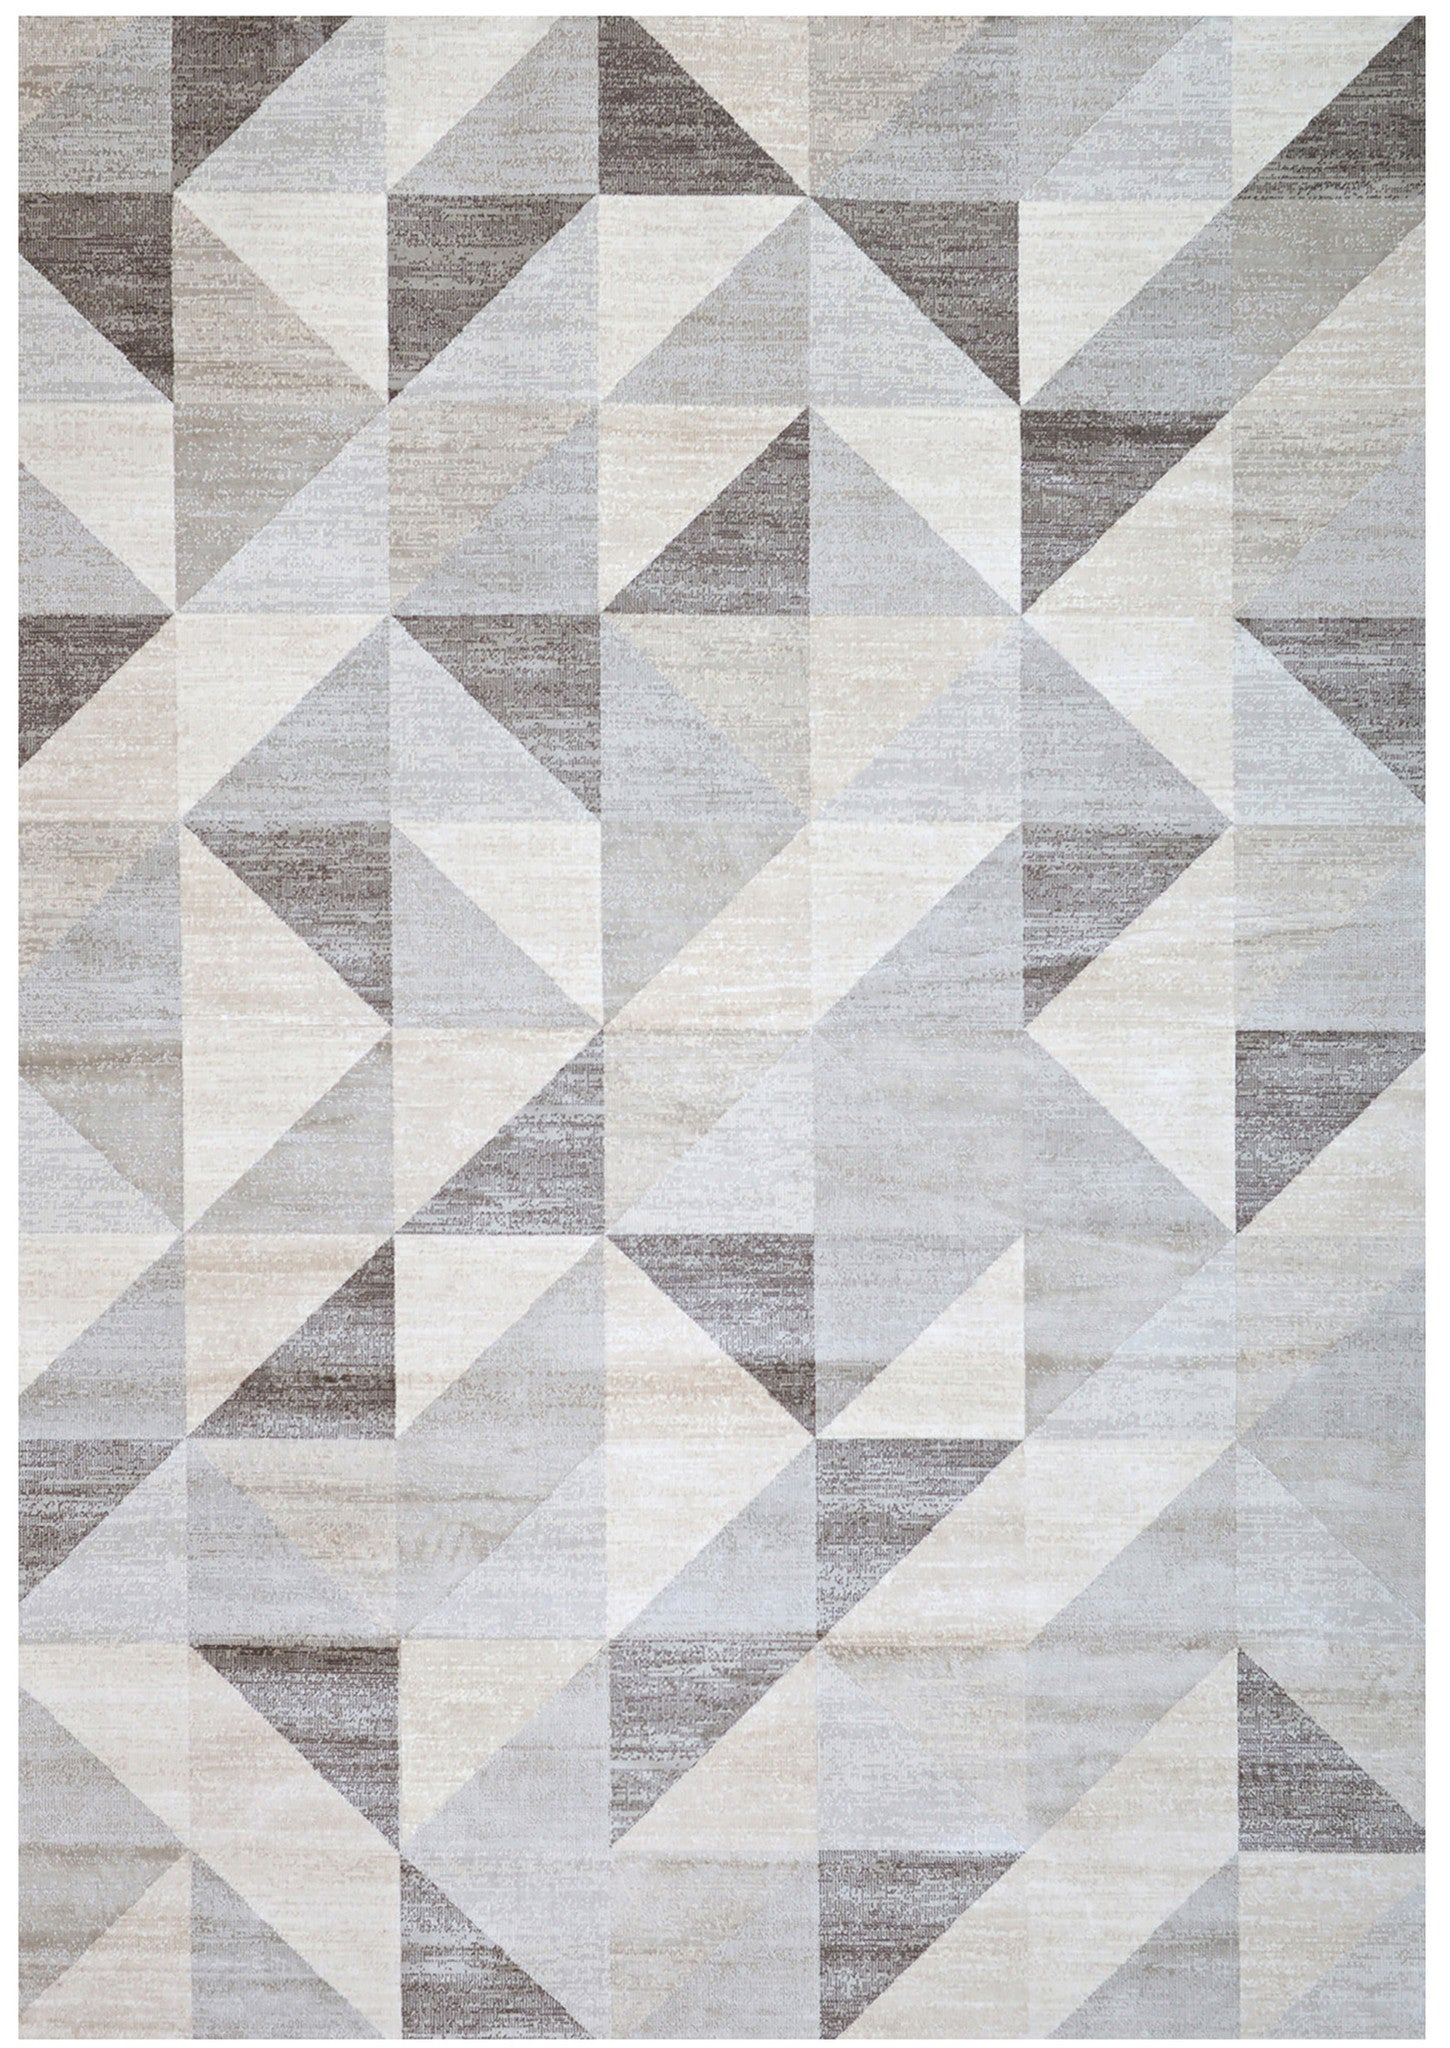 white modern rug. silver gray and white modern geometric triangle pattern rug woodwaves